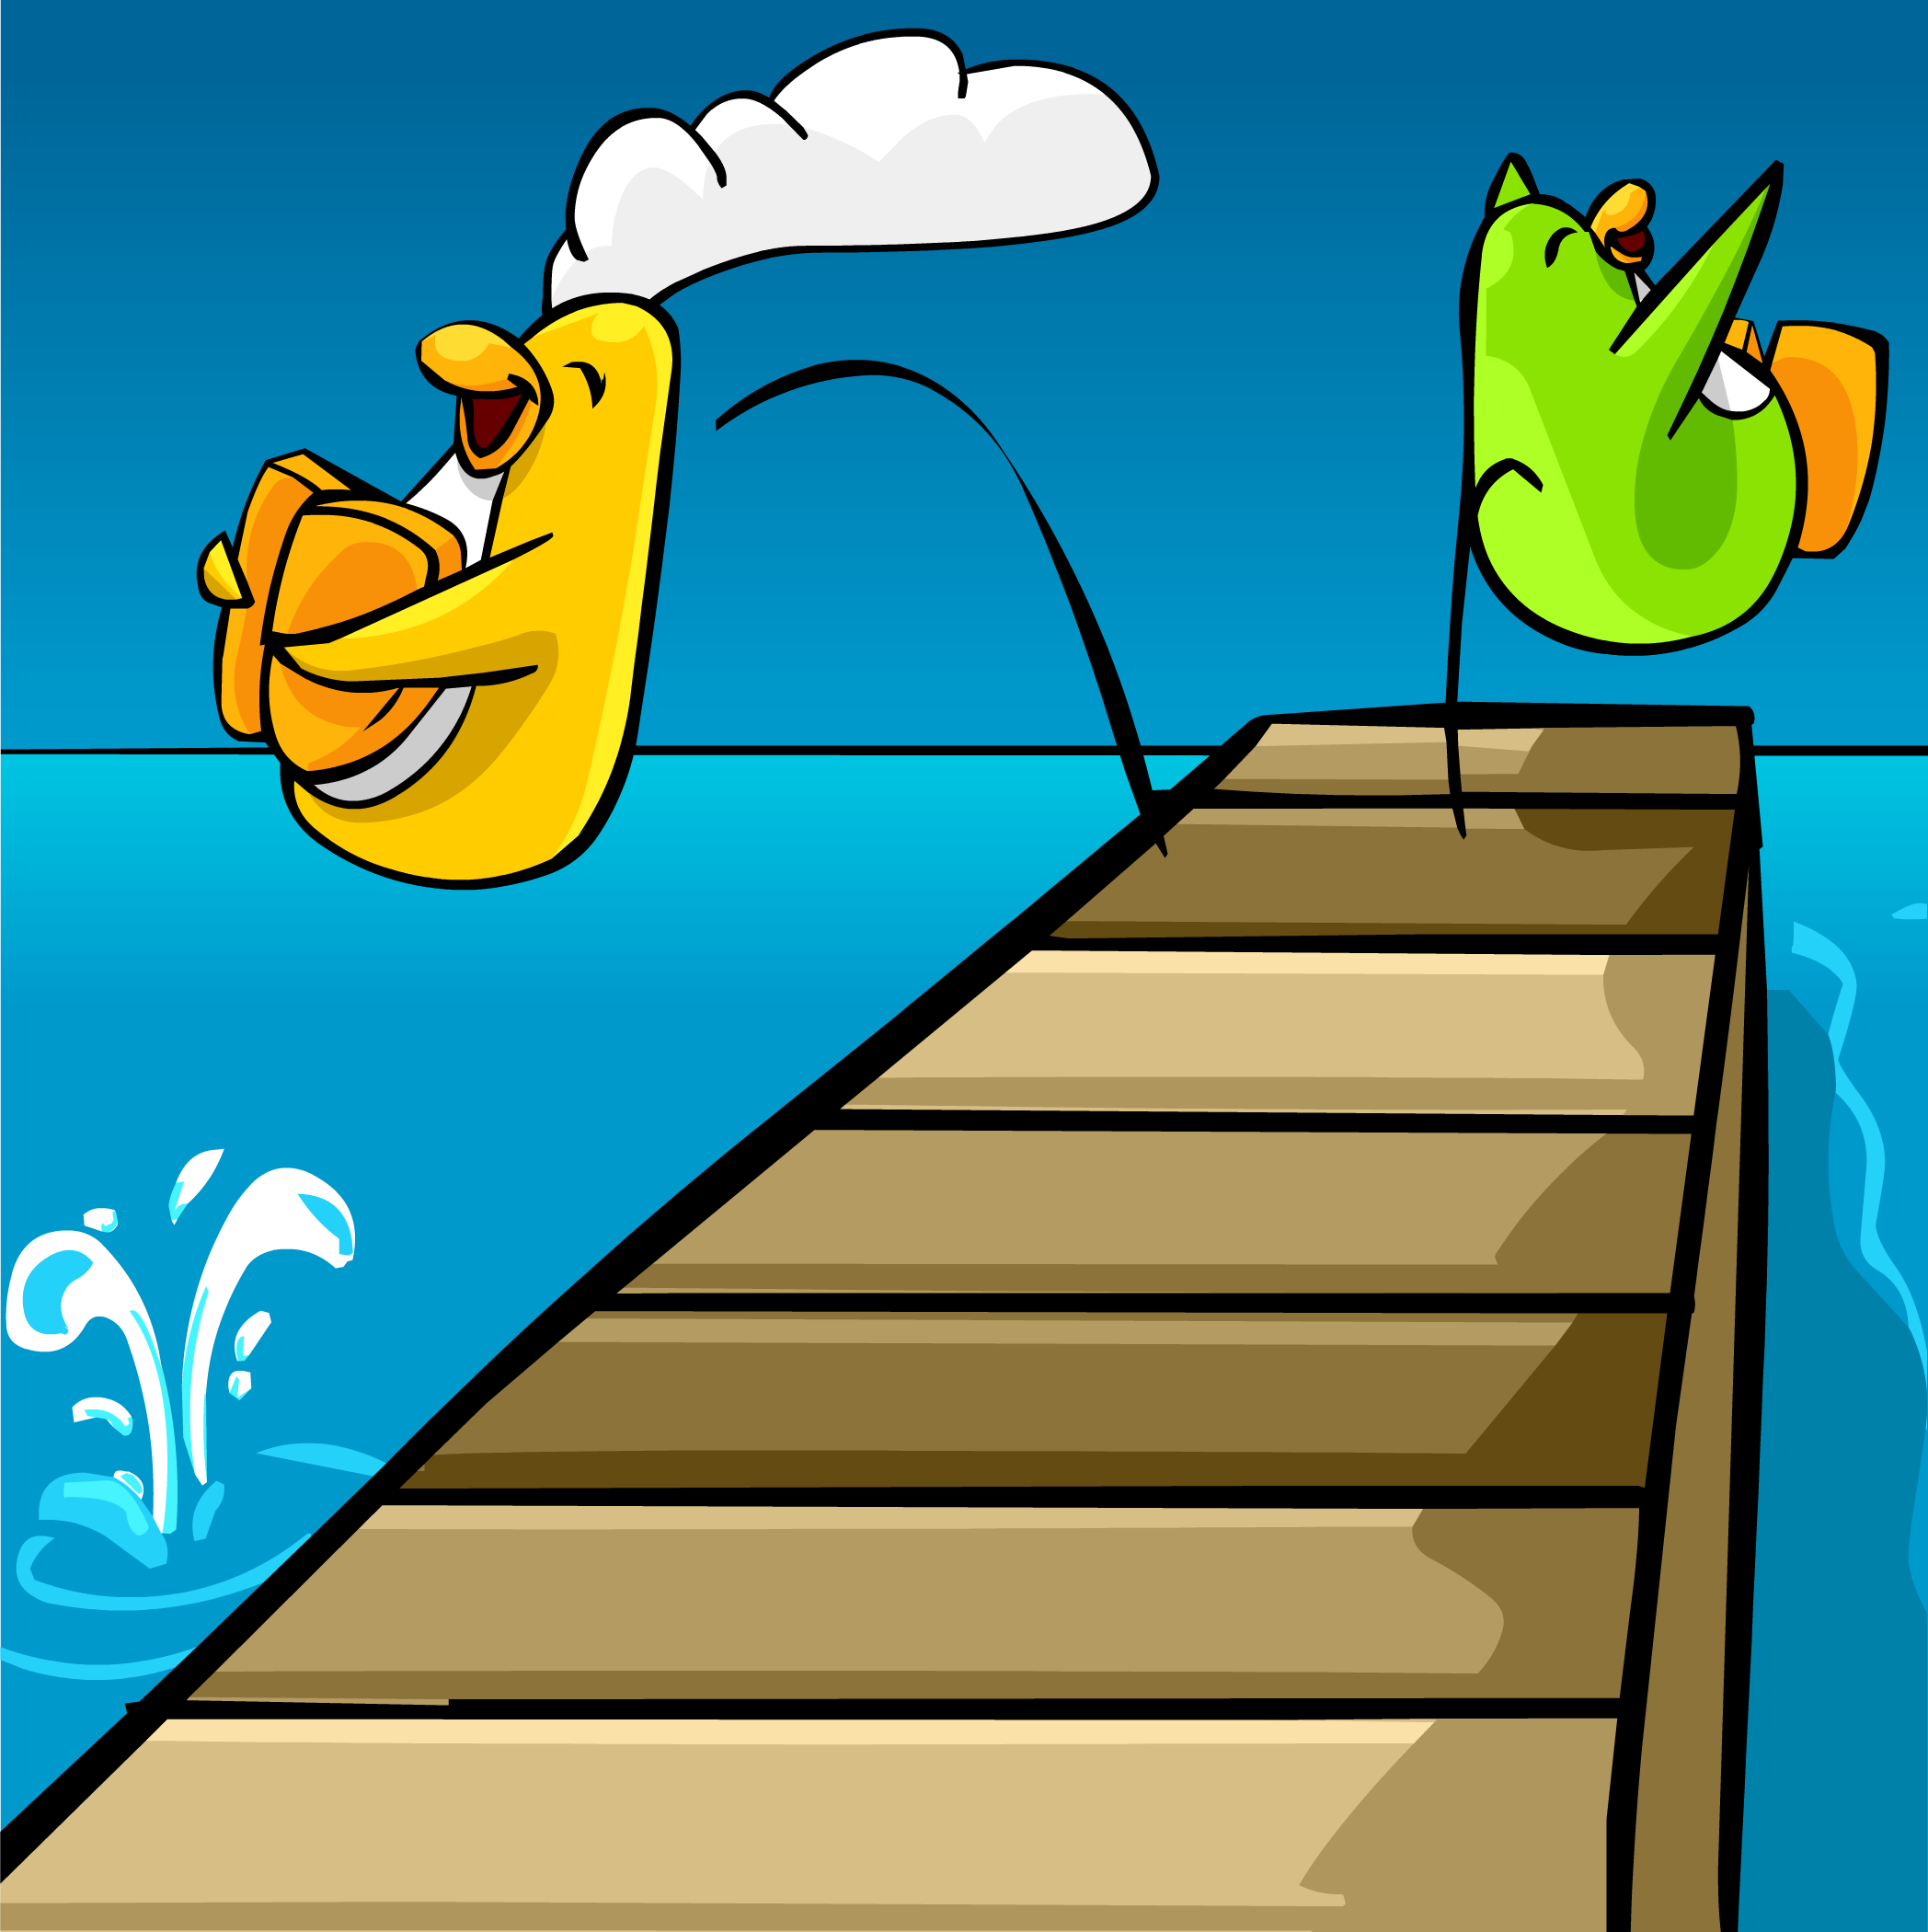 Dock Jumping Background